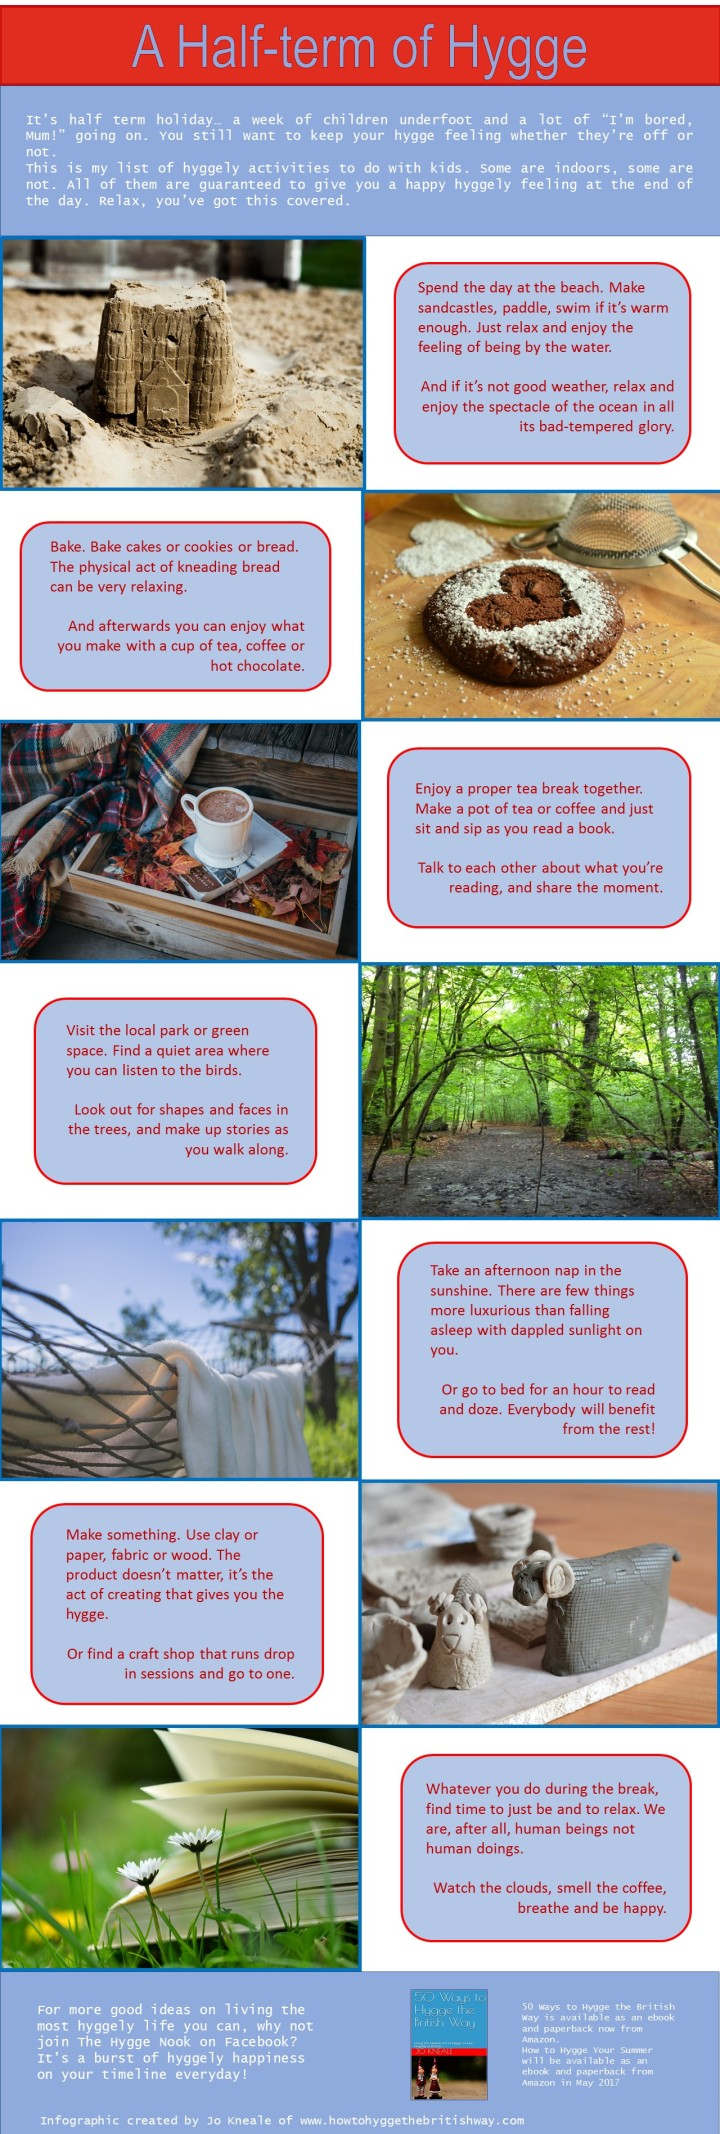 A Half Term of Hygge Infographic by Jo Kneale